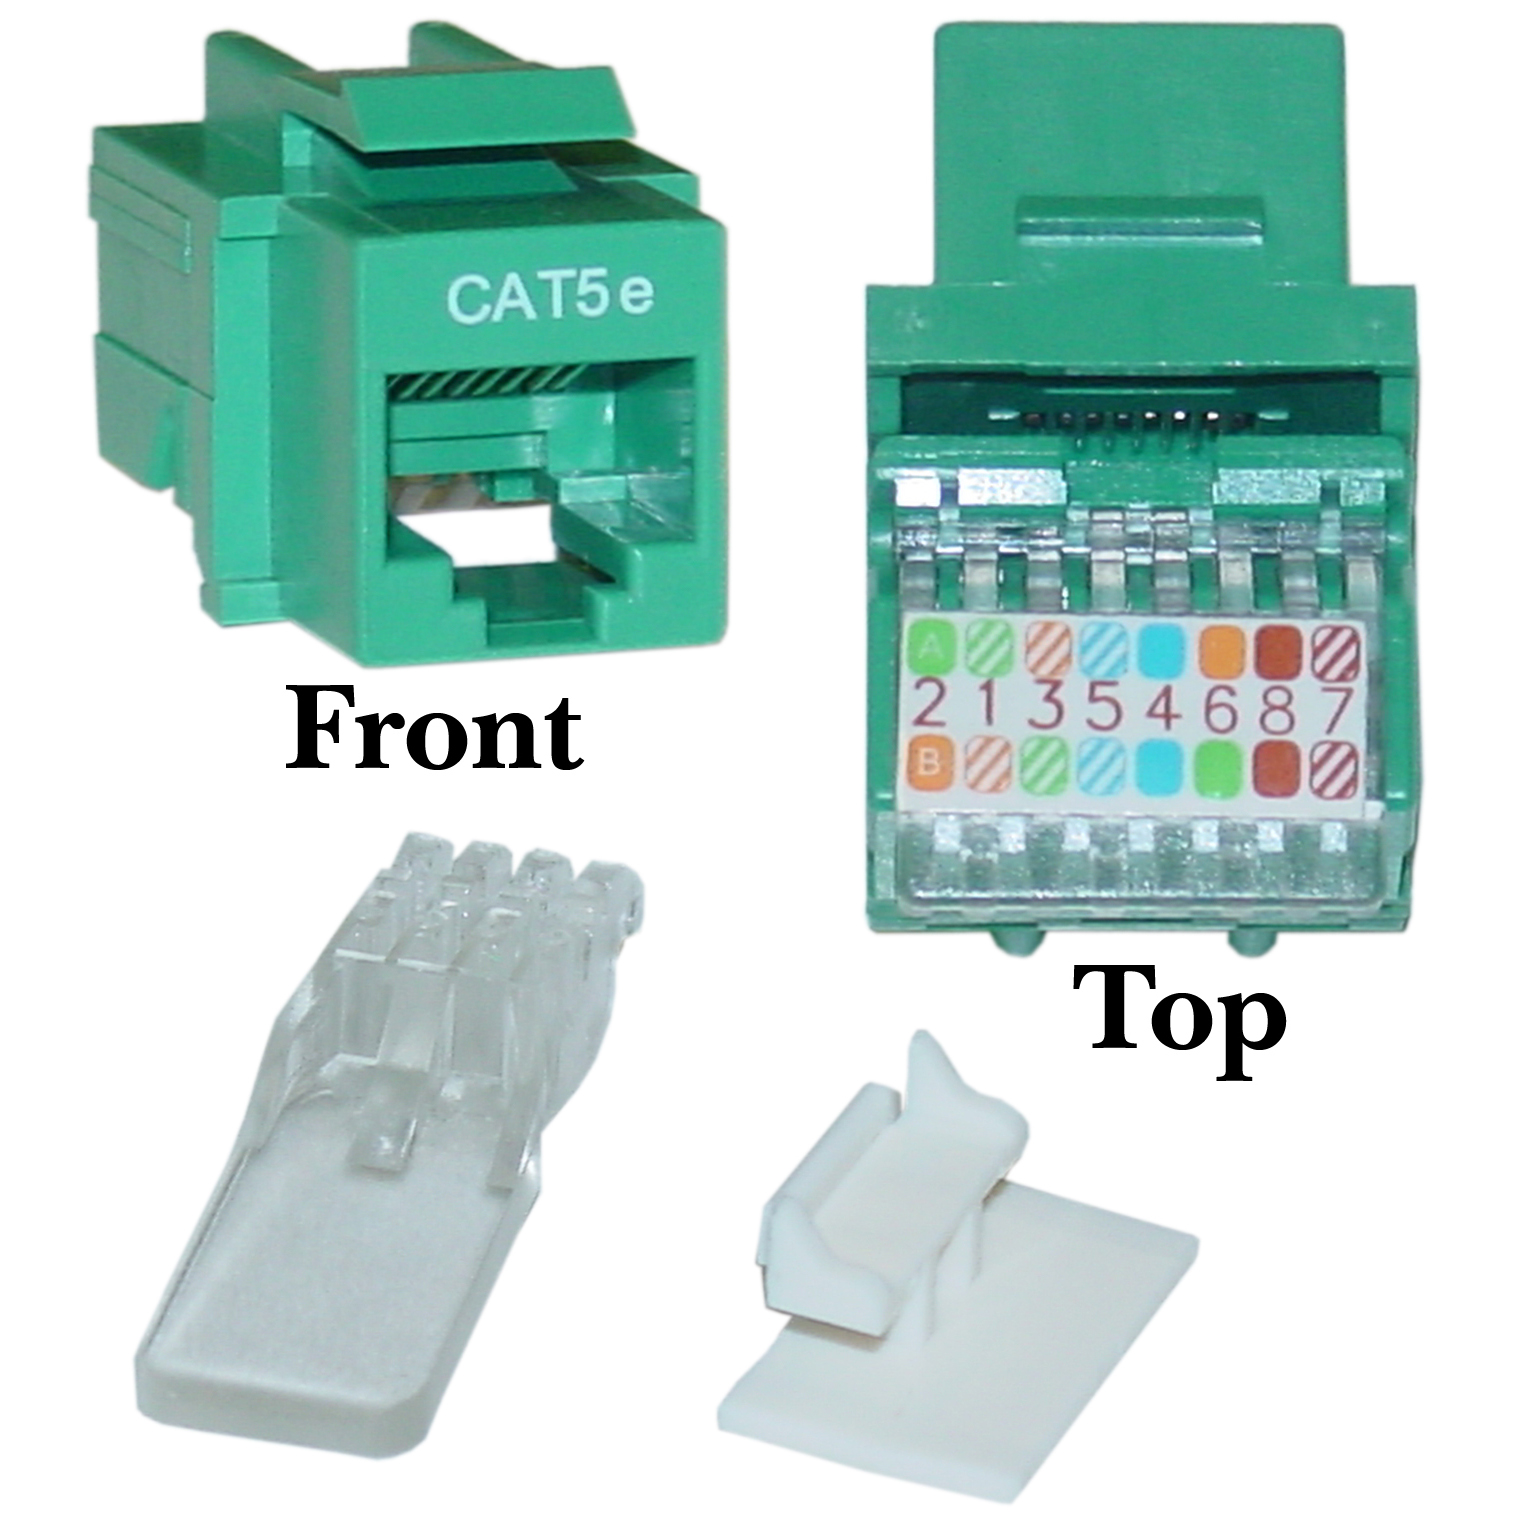 Green Cat5e RJ45 Keystone Jack Toolless CableWholesale